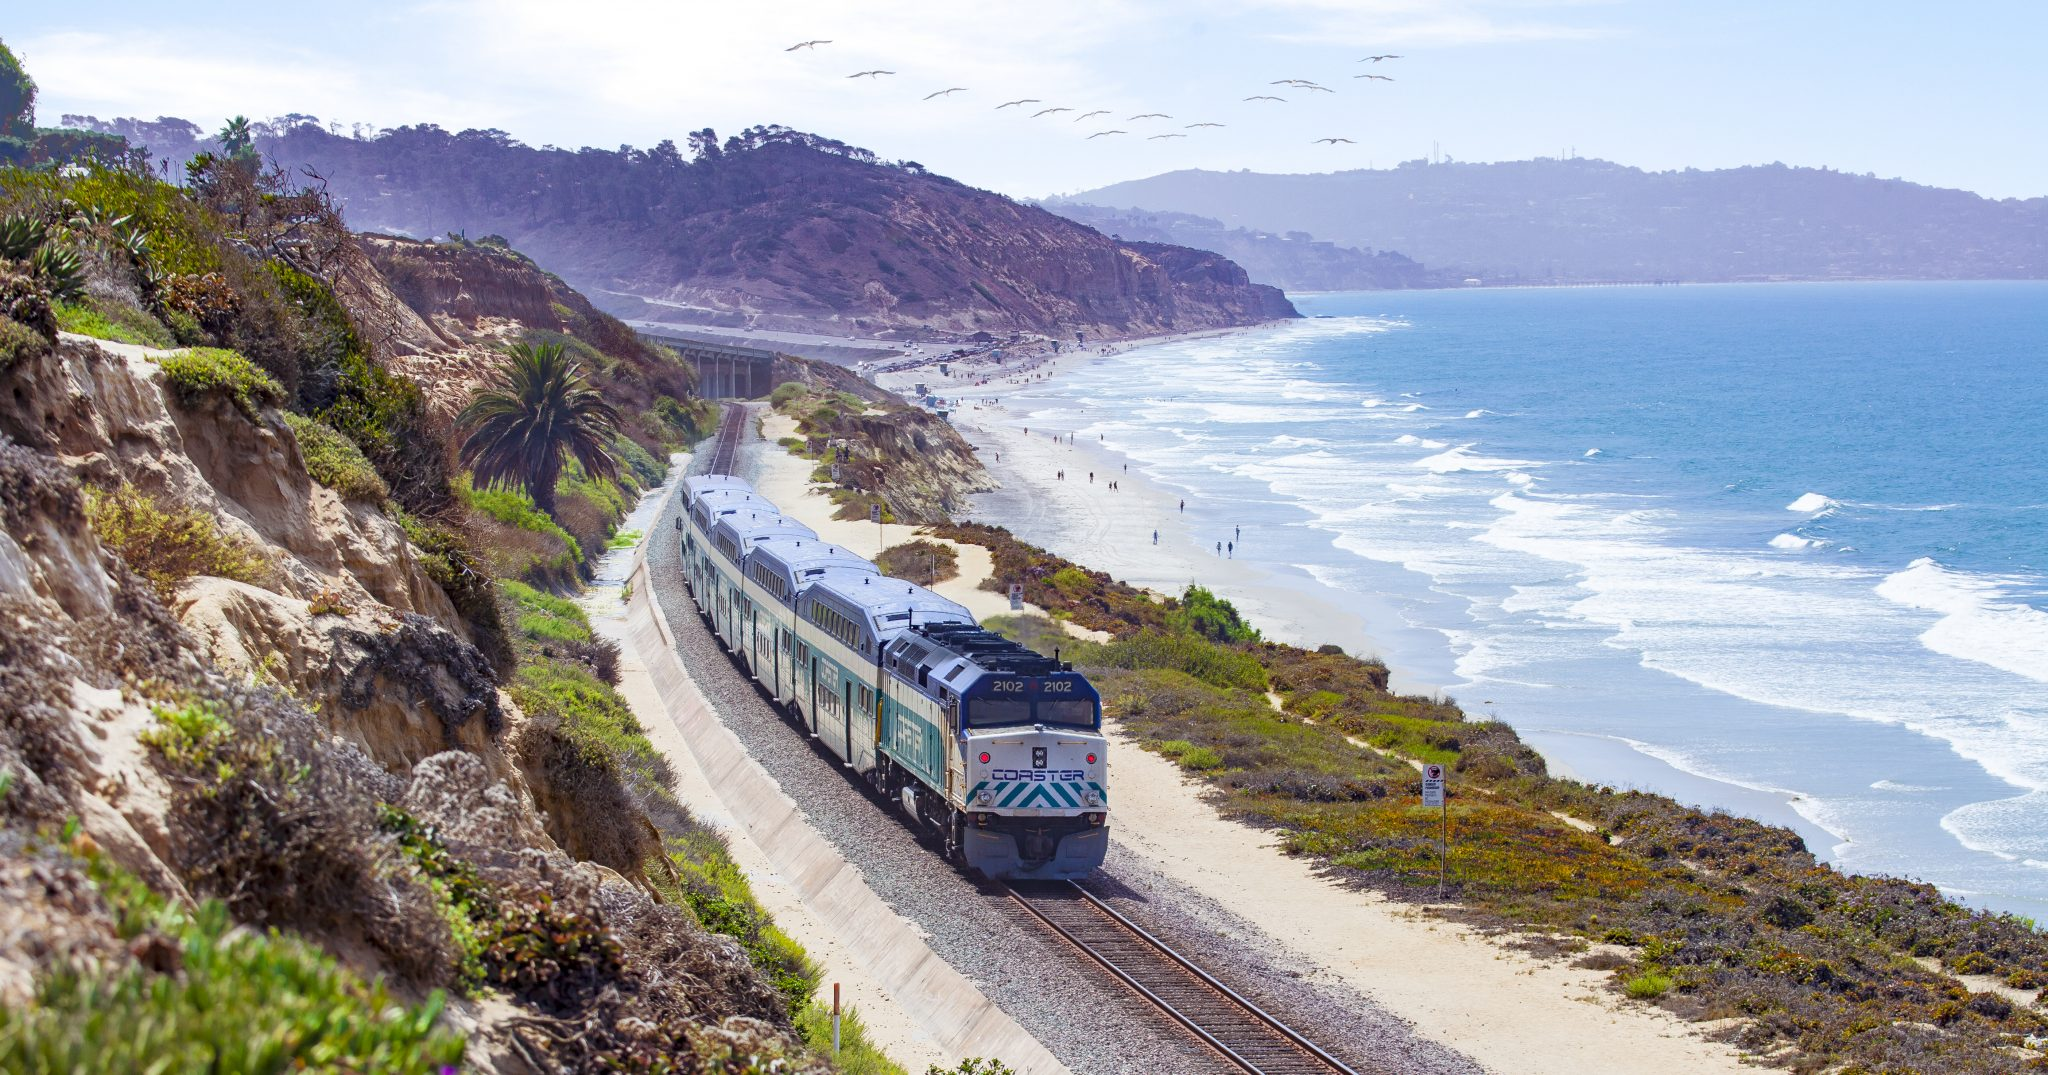 Coaster - No Car, No Problem: San Diego's Other Modes of Transit